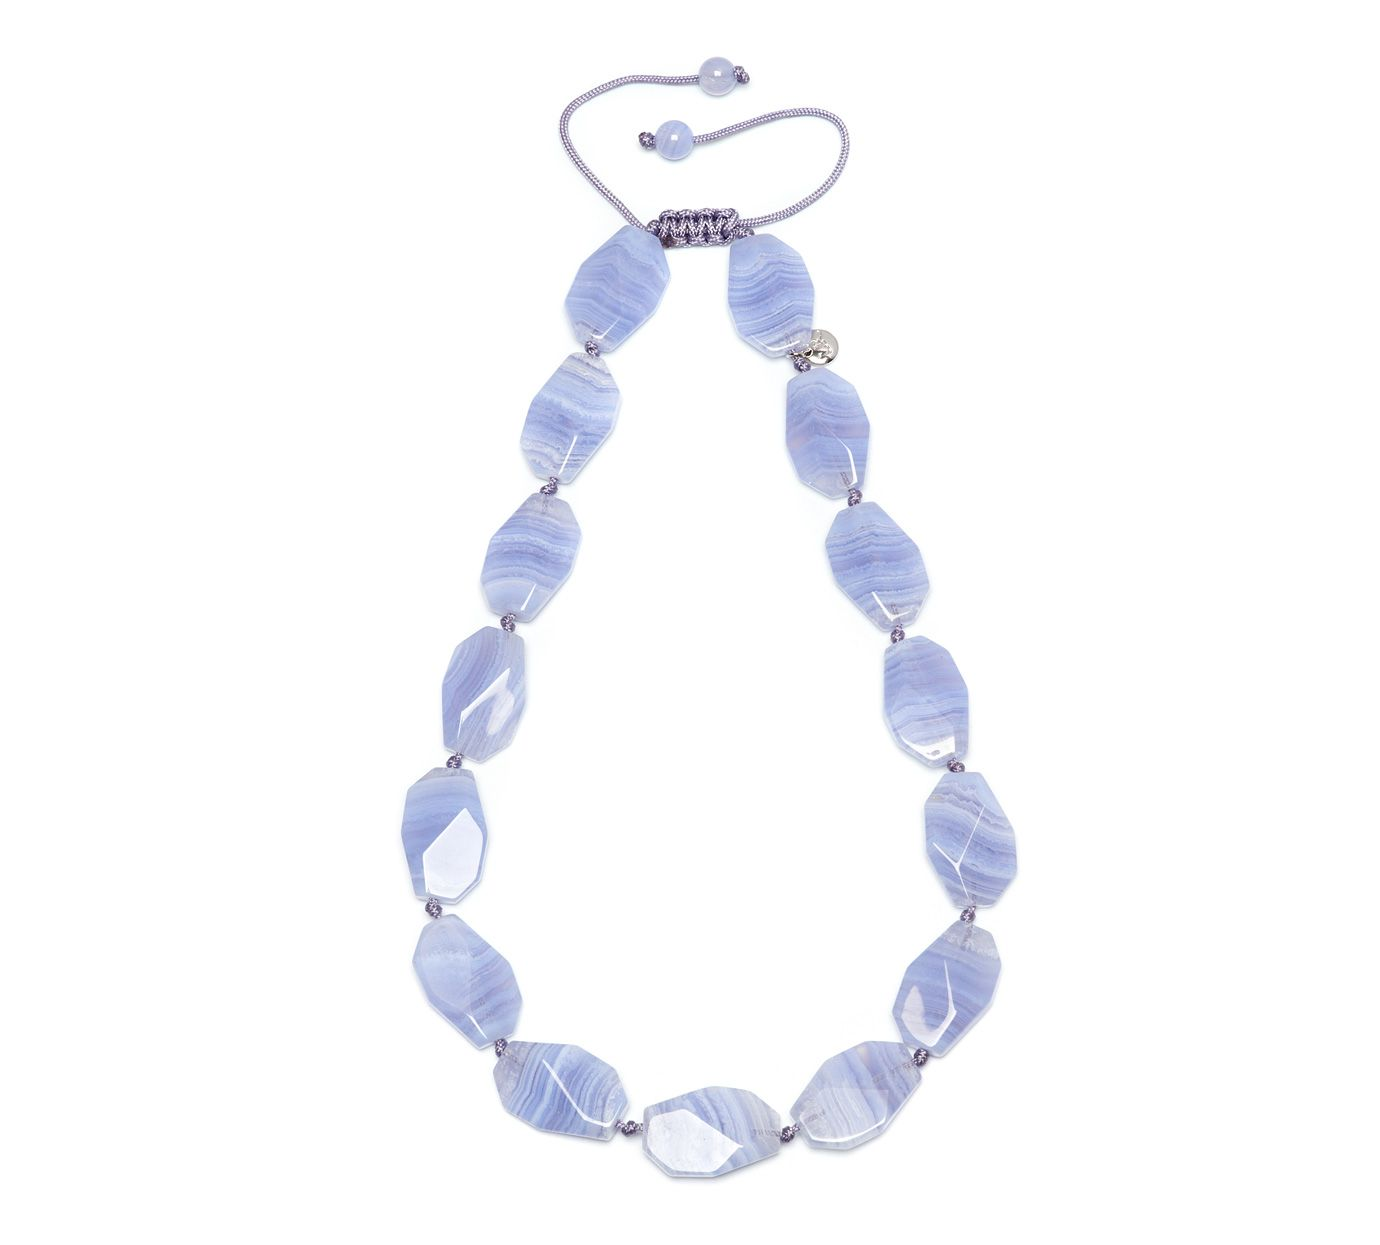 lola rose rylee necklace blue lace agate